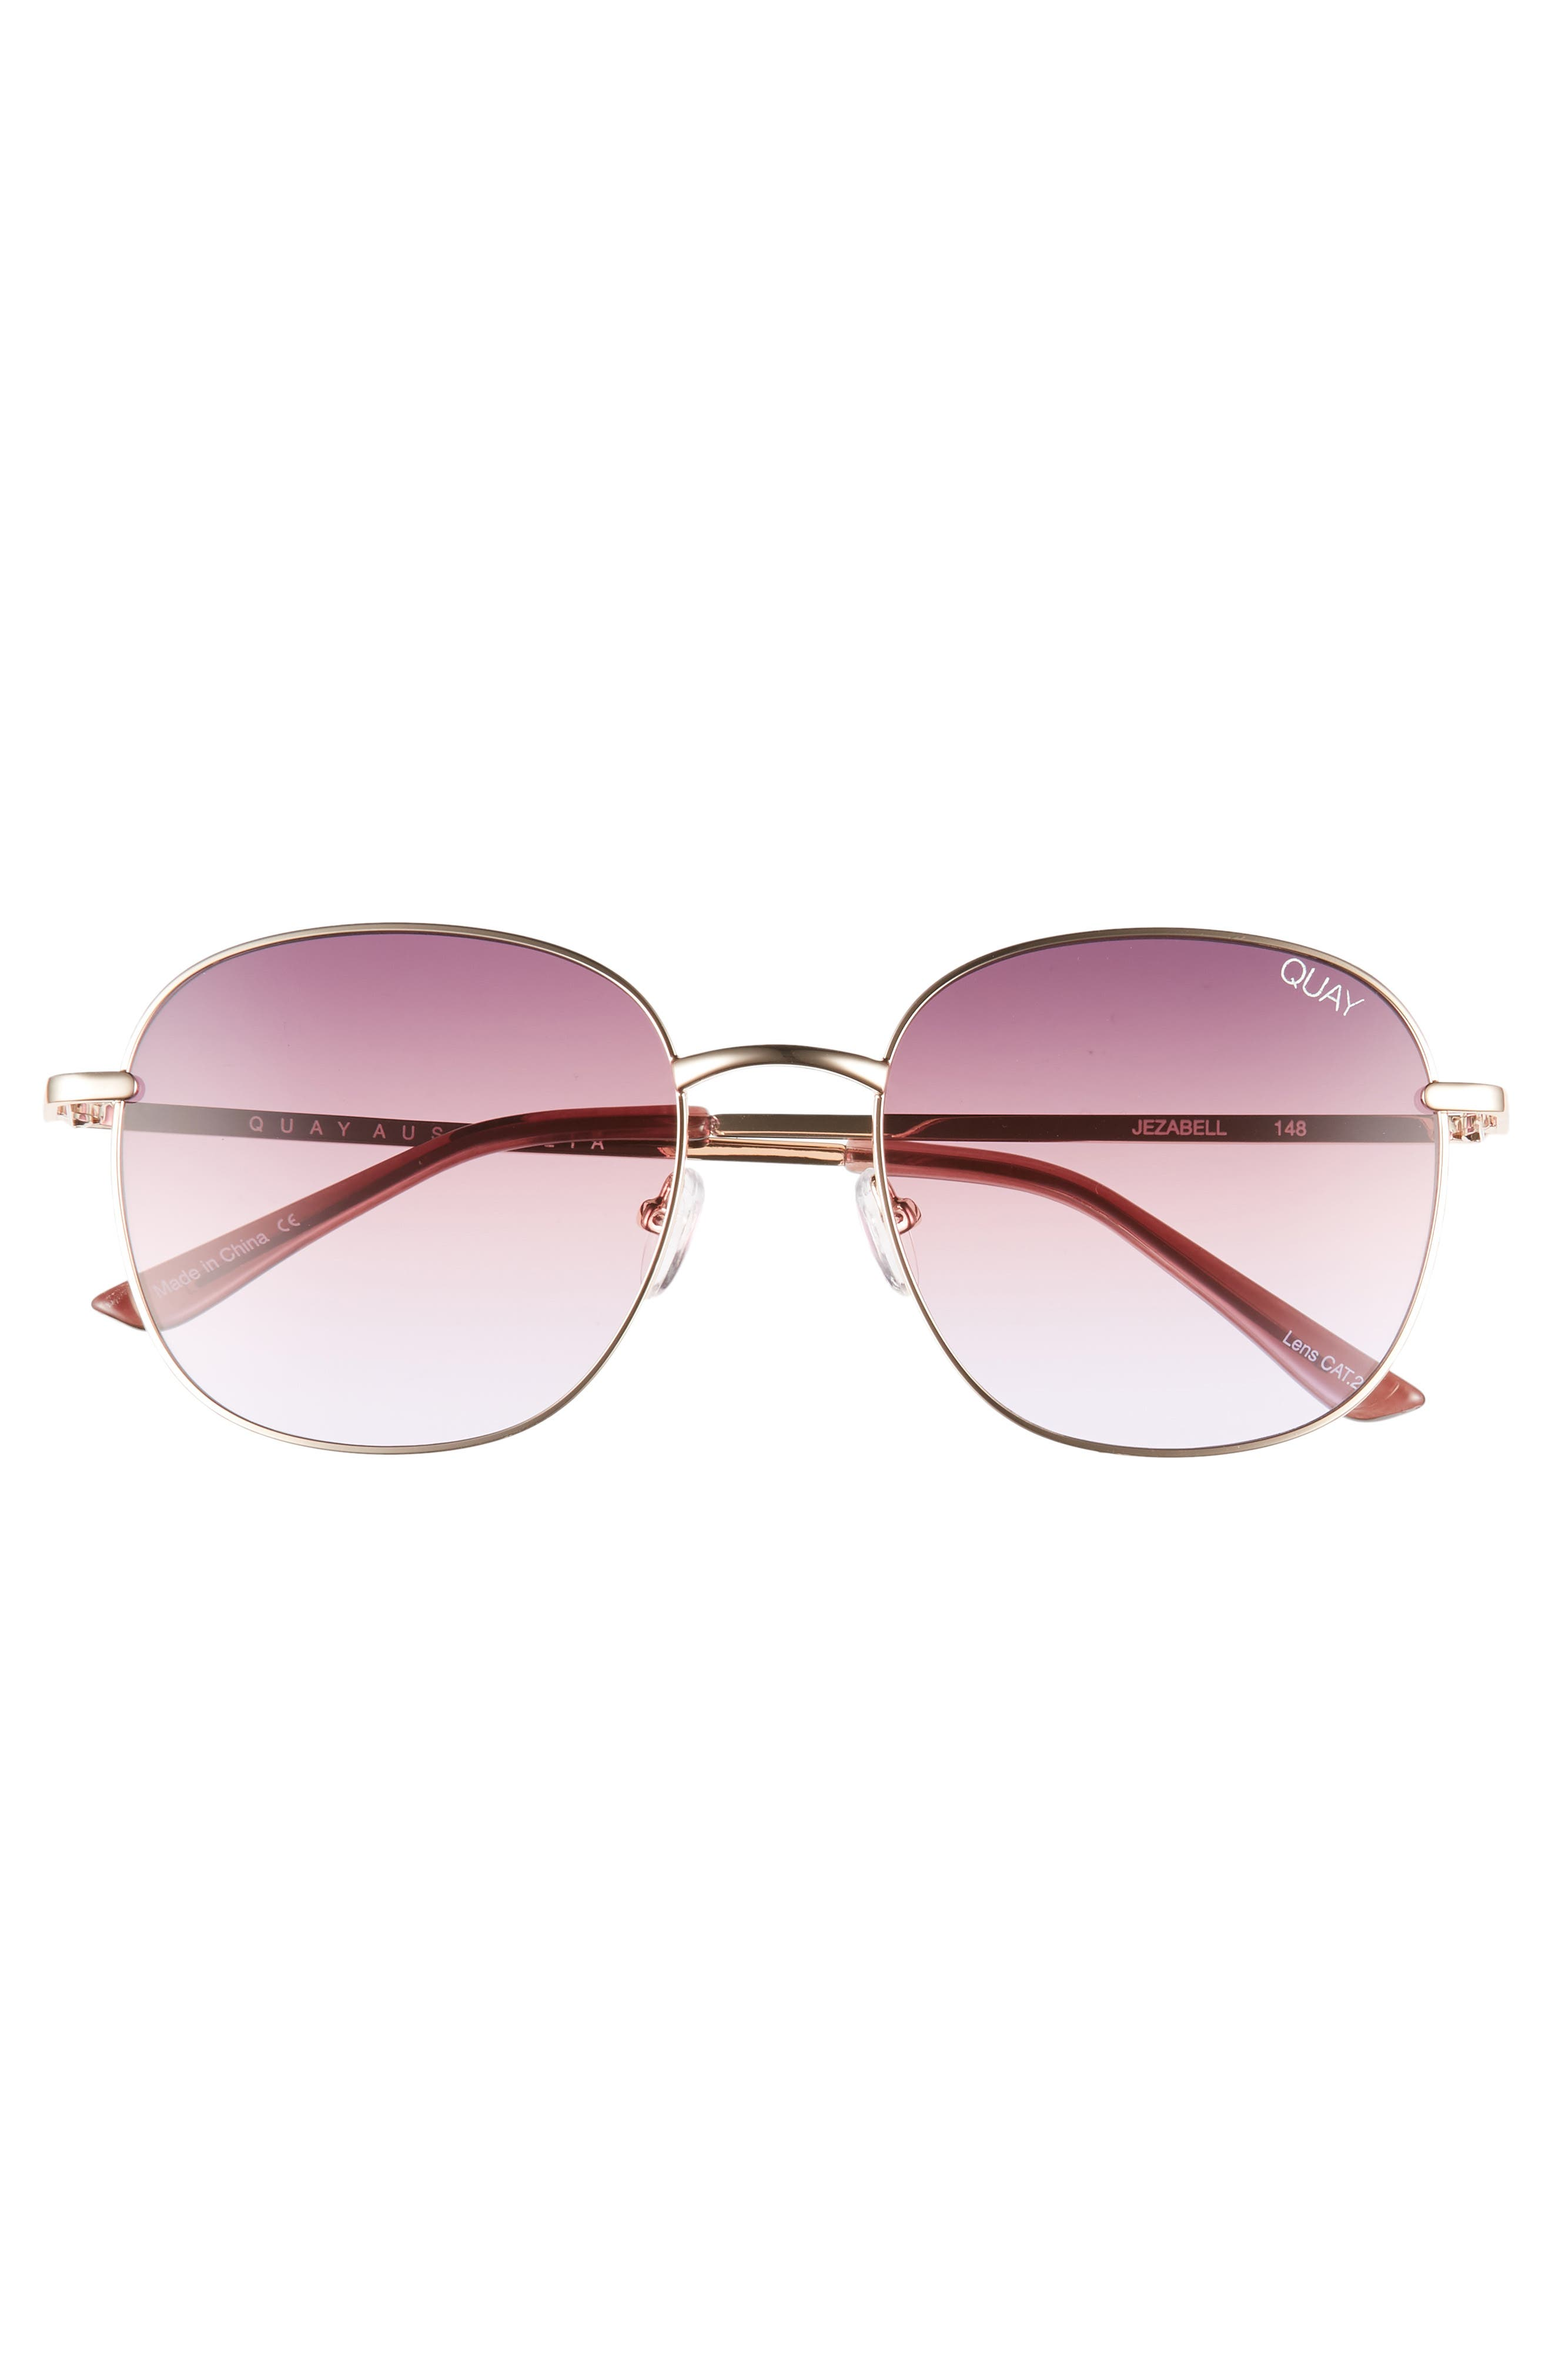 Jezabell 57mm Round Sunglasses,                             Alternate thumbnail 3, color,                             ROSE / PURPLE PINK FADE